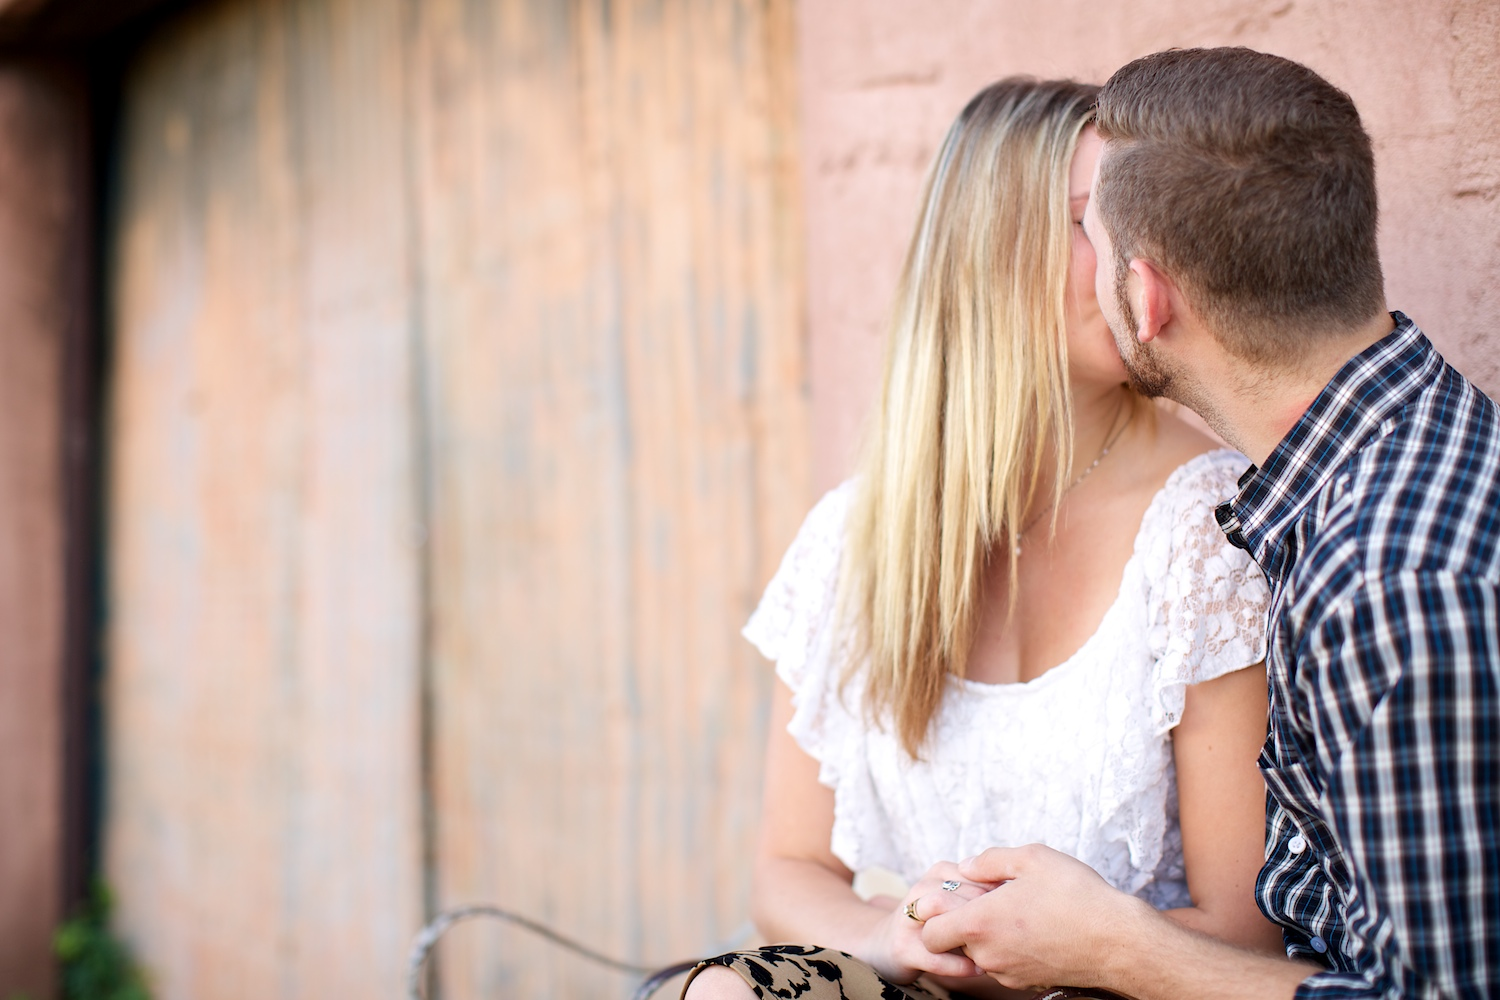 Old Town Scottsdale offers a lot of texture to couples' photos